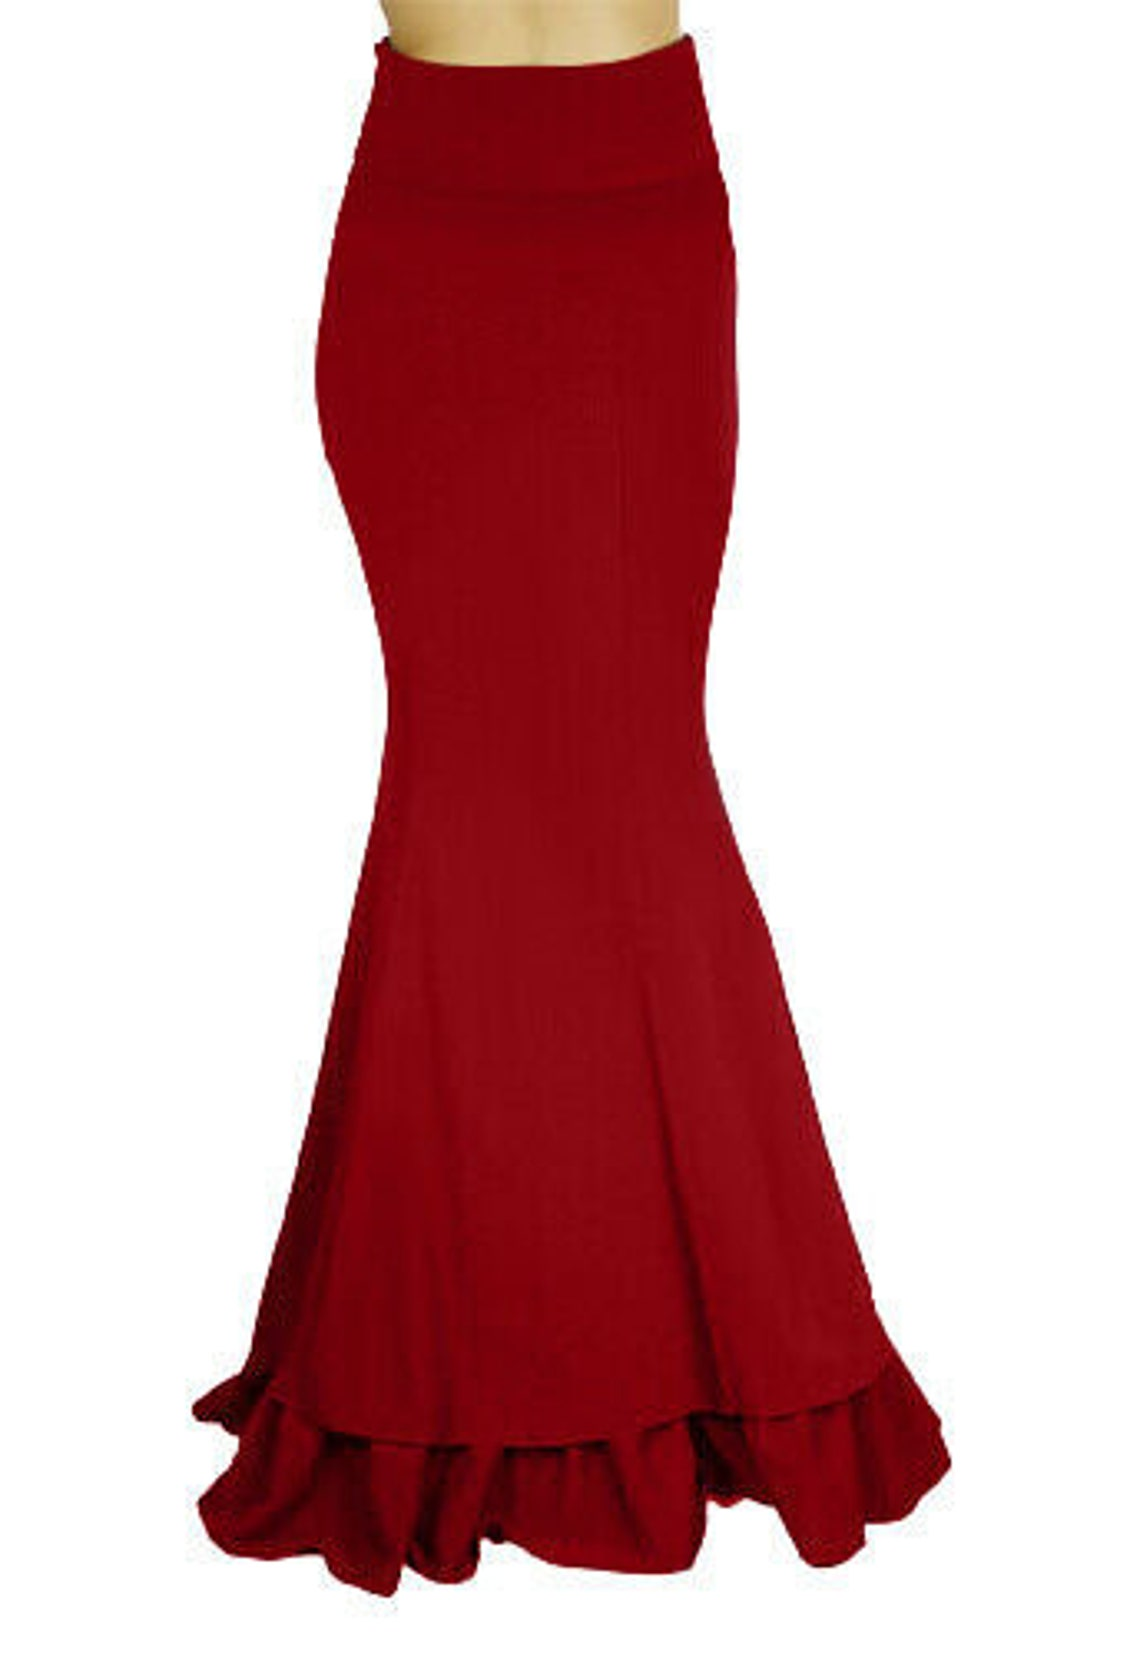 18 20 22 24 26 plus red floor length quality ruffle steampunk